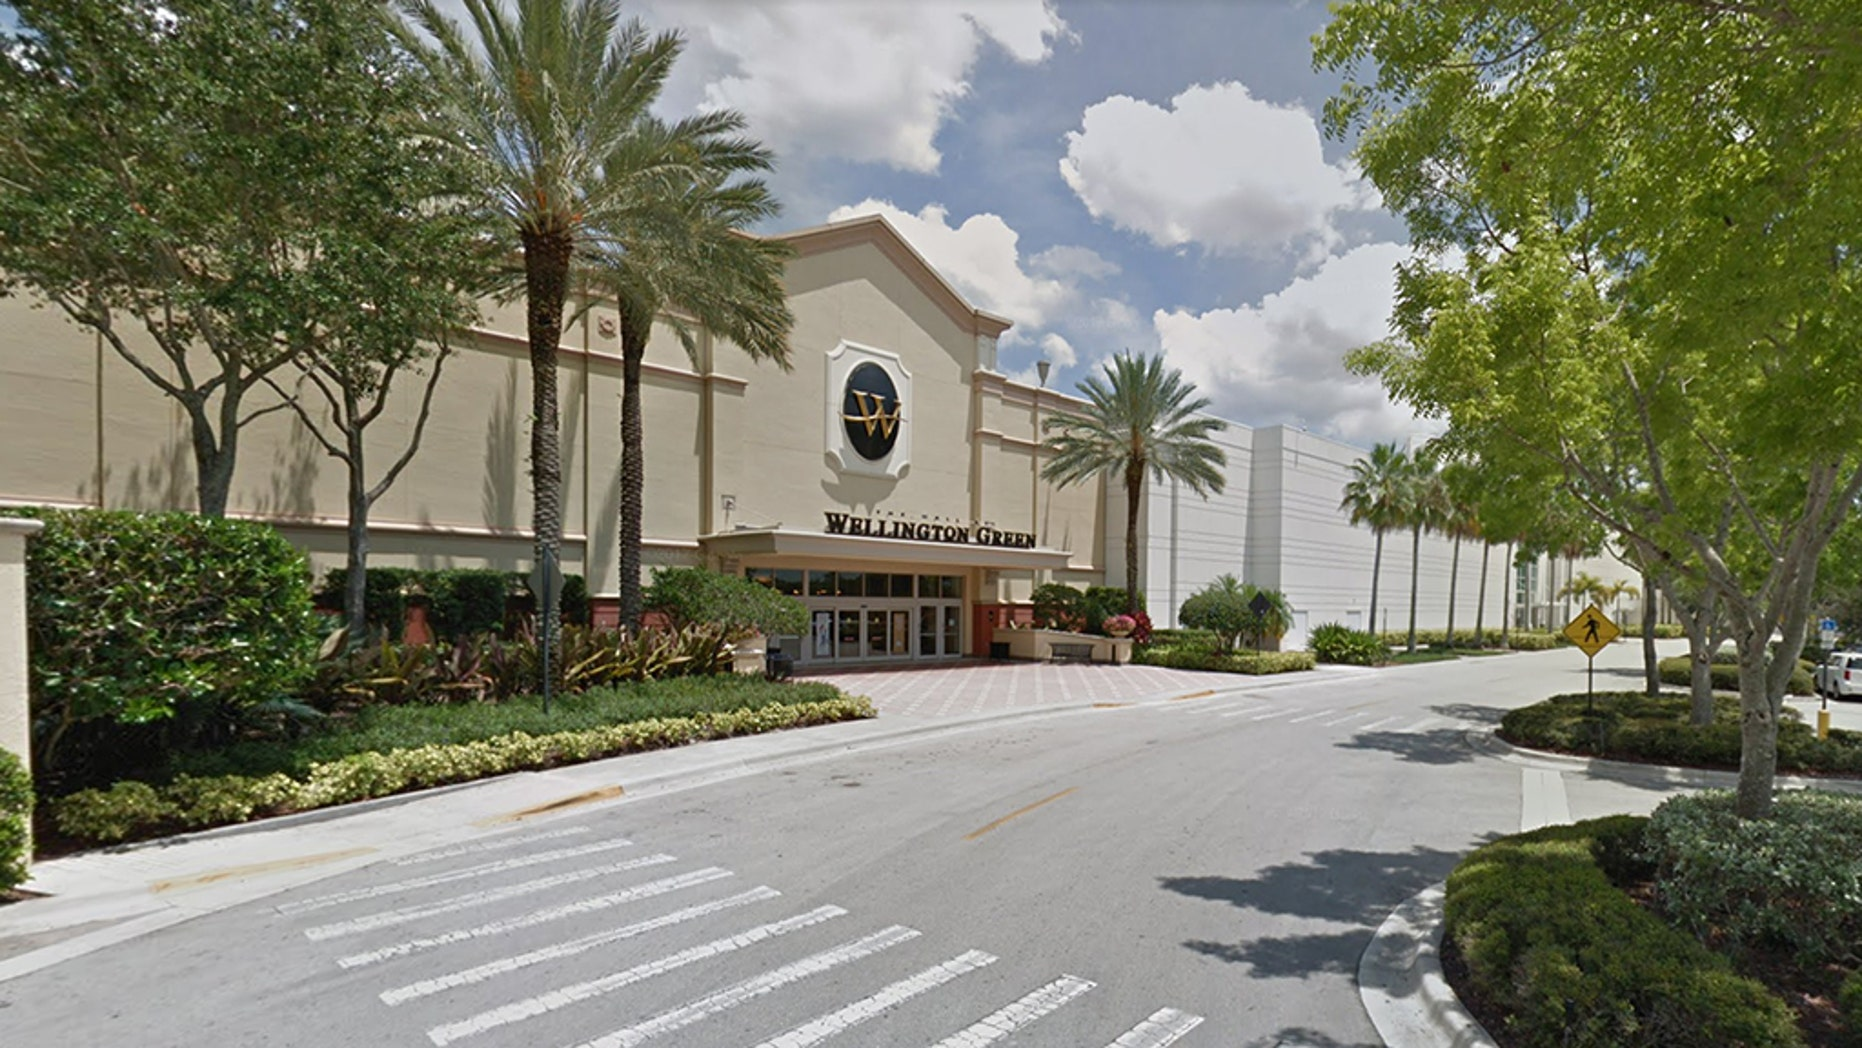 The Palm Beach Sheriff's Office tweeted that a suspect shot at deputies and hit a K9 officer near The Mall at Wellington Green in South Florida. (Google Maps)